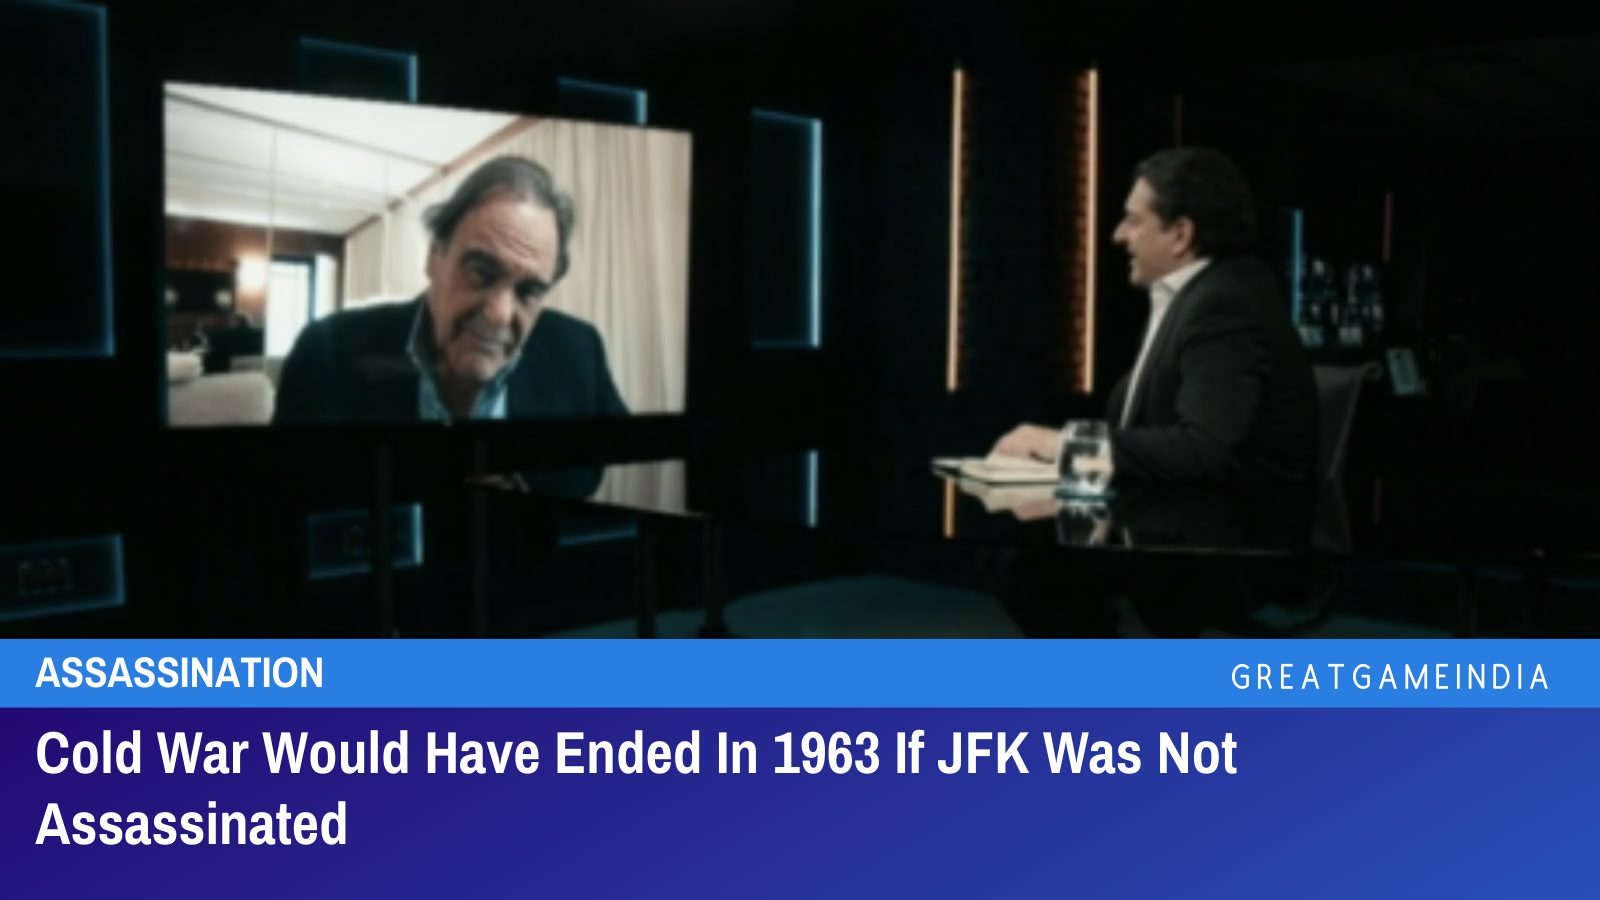 Cold War Would Have Ended In 1963 If JFK Was Not Assassinated